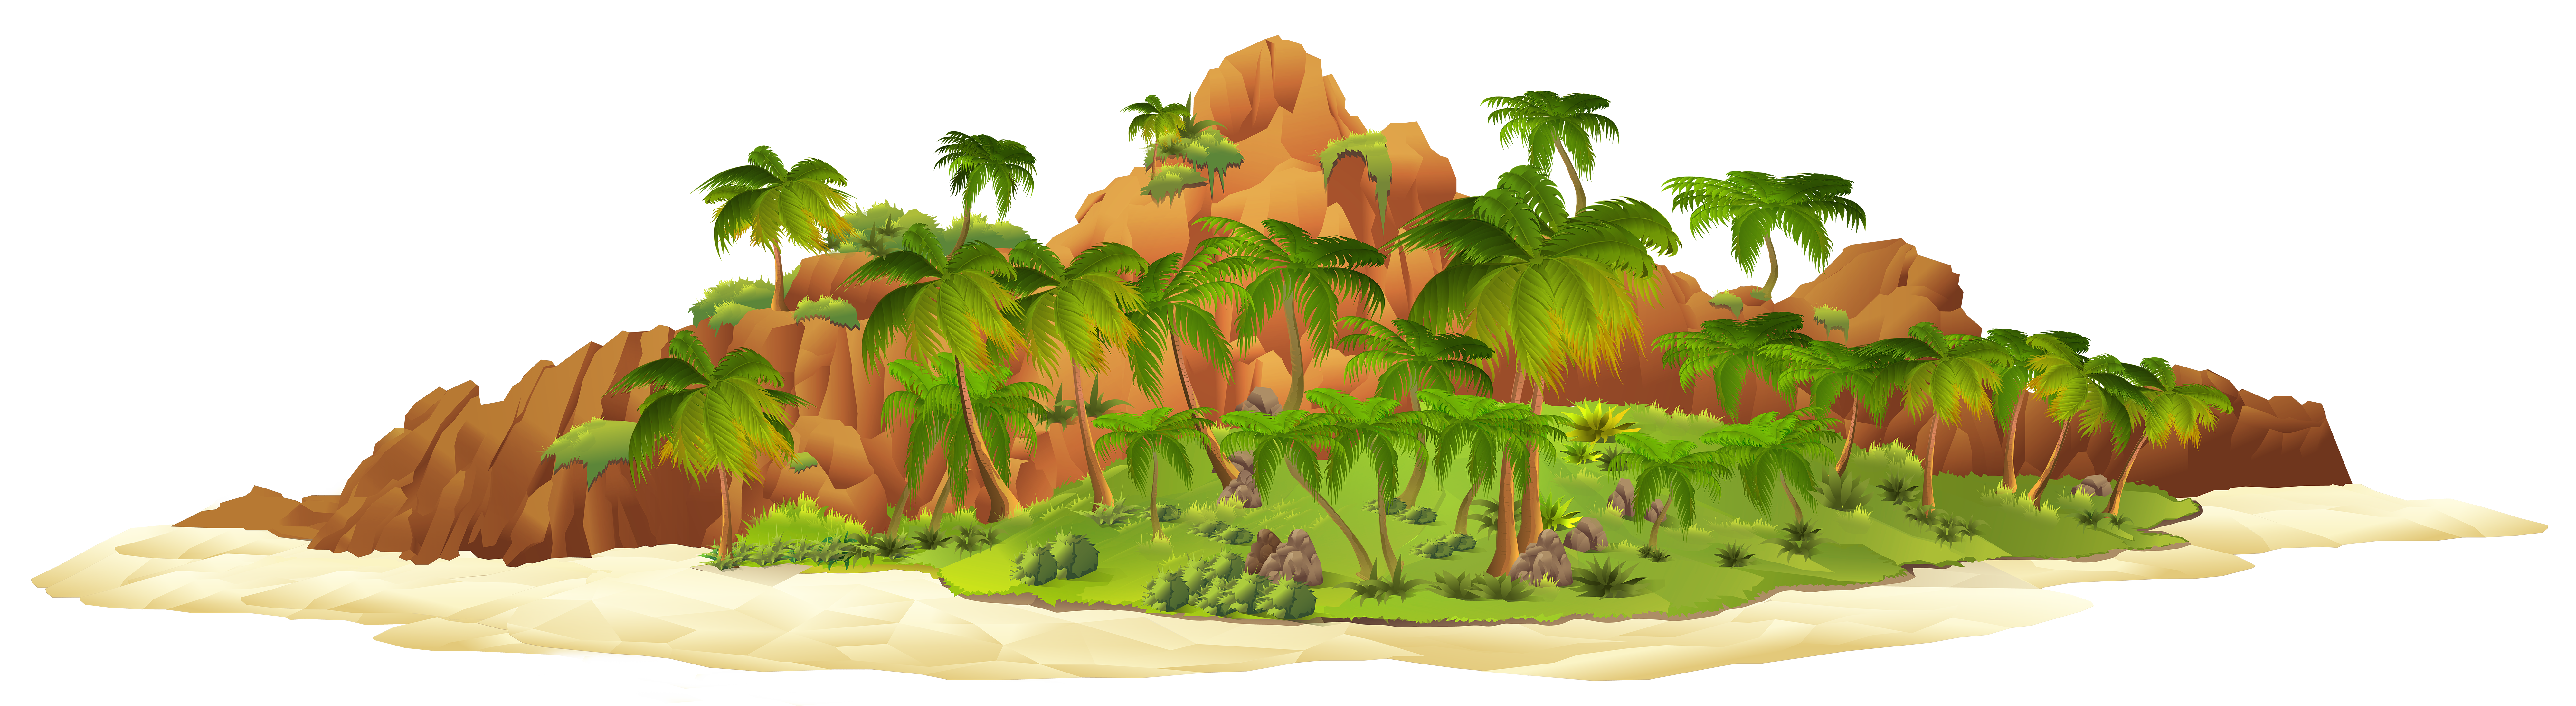 Island with palm trees. Clipart grass tree